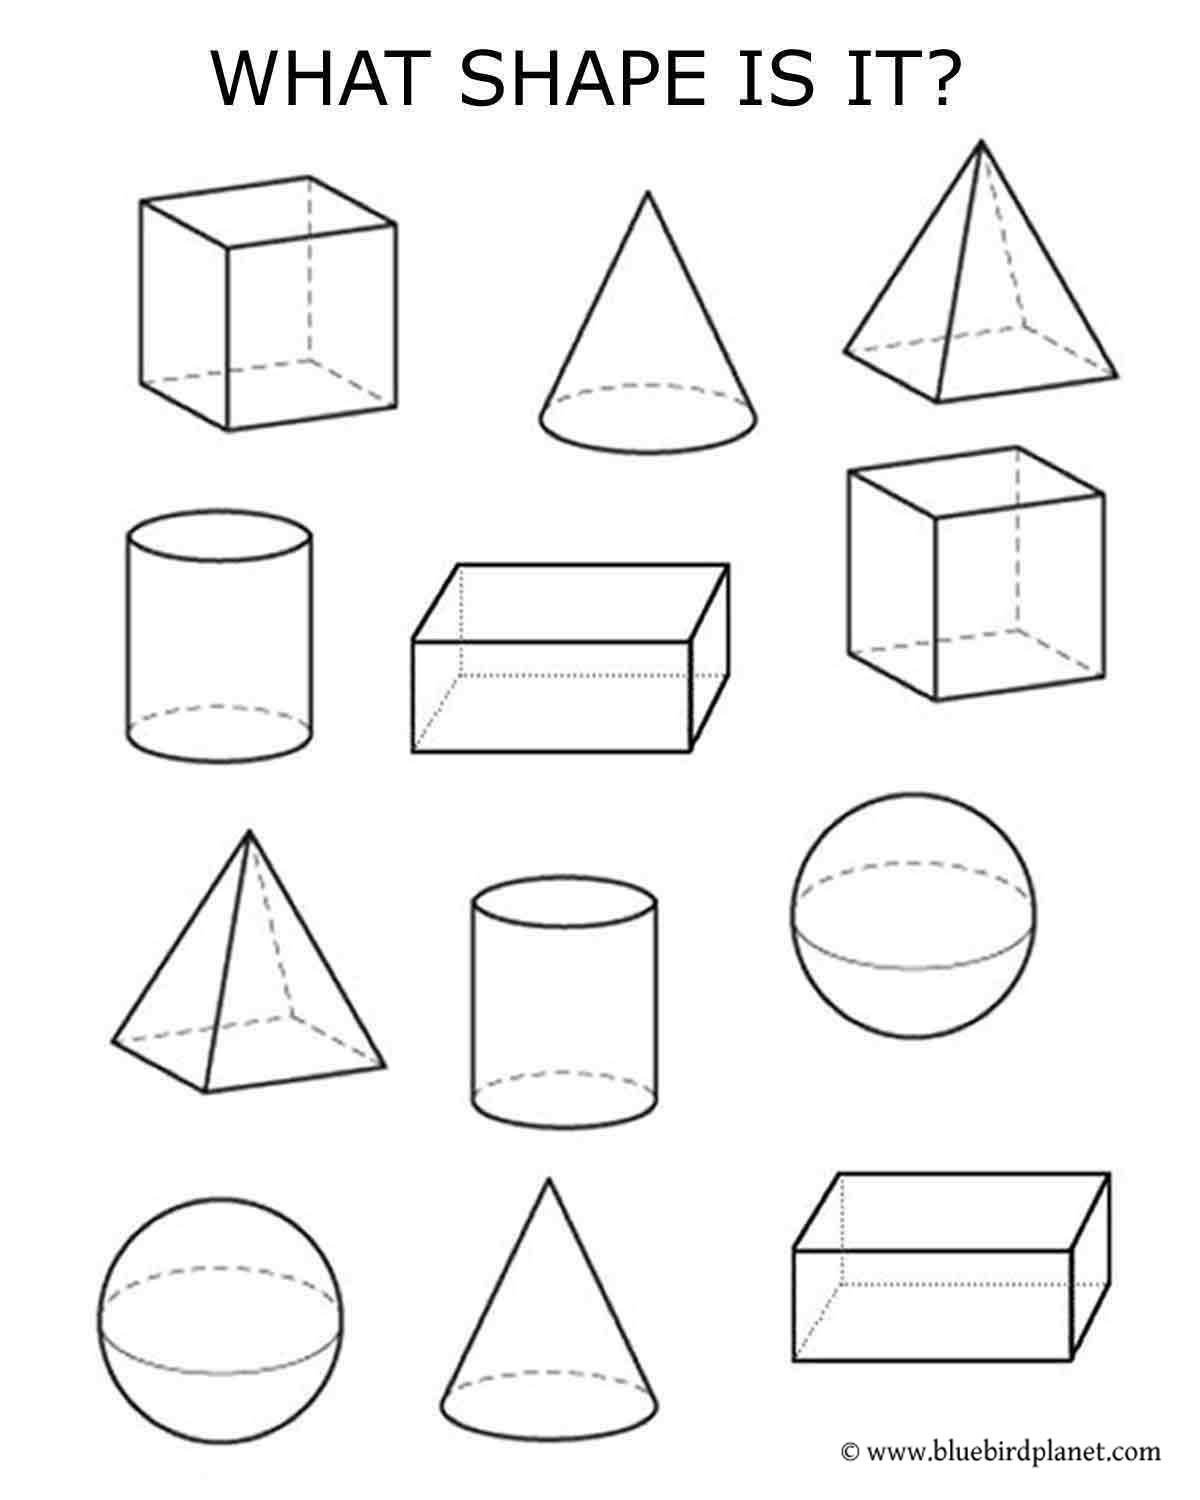 Polygon Worksheets 5th Grade Free Printables for Kids